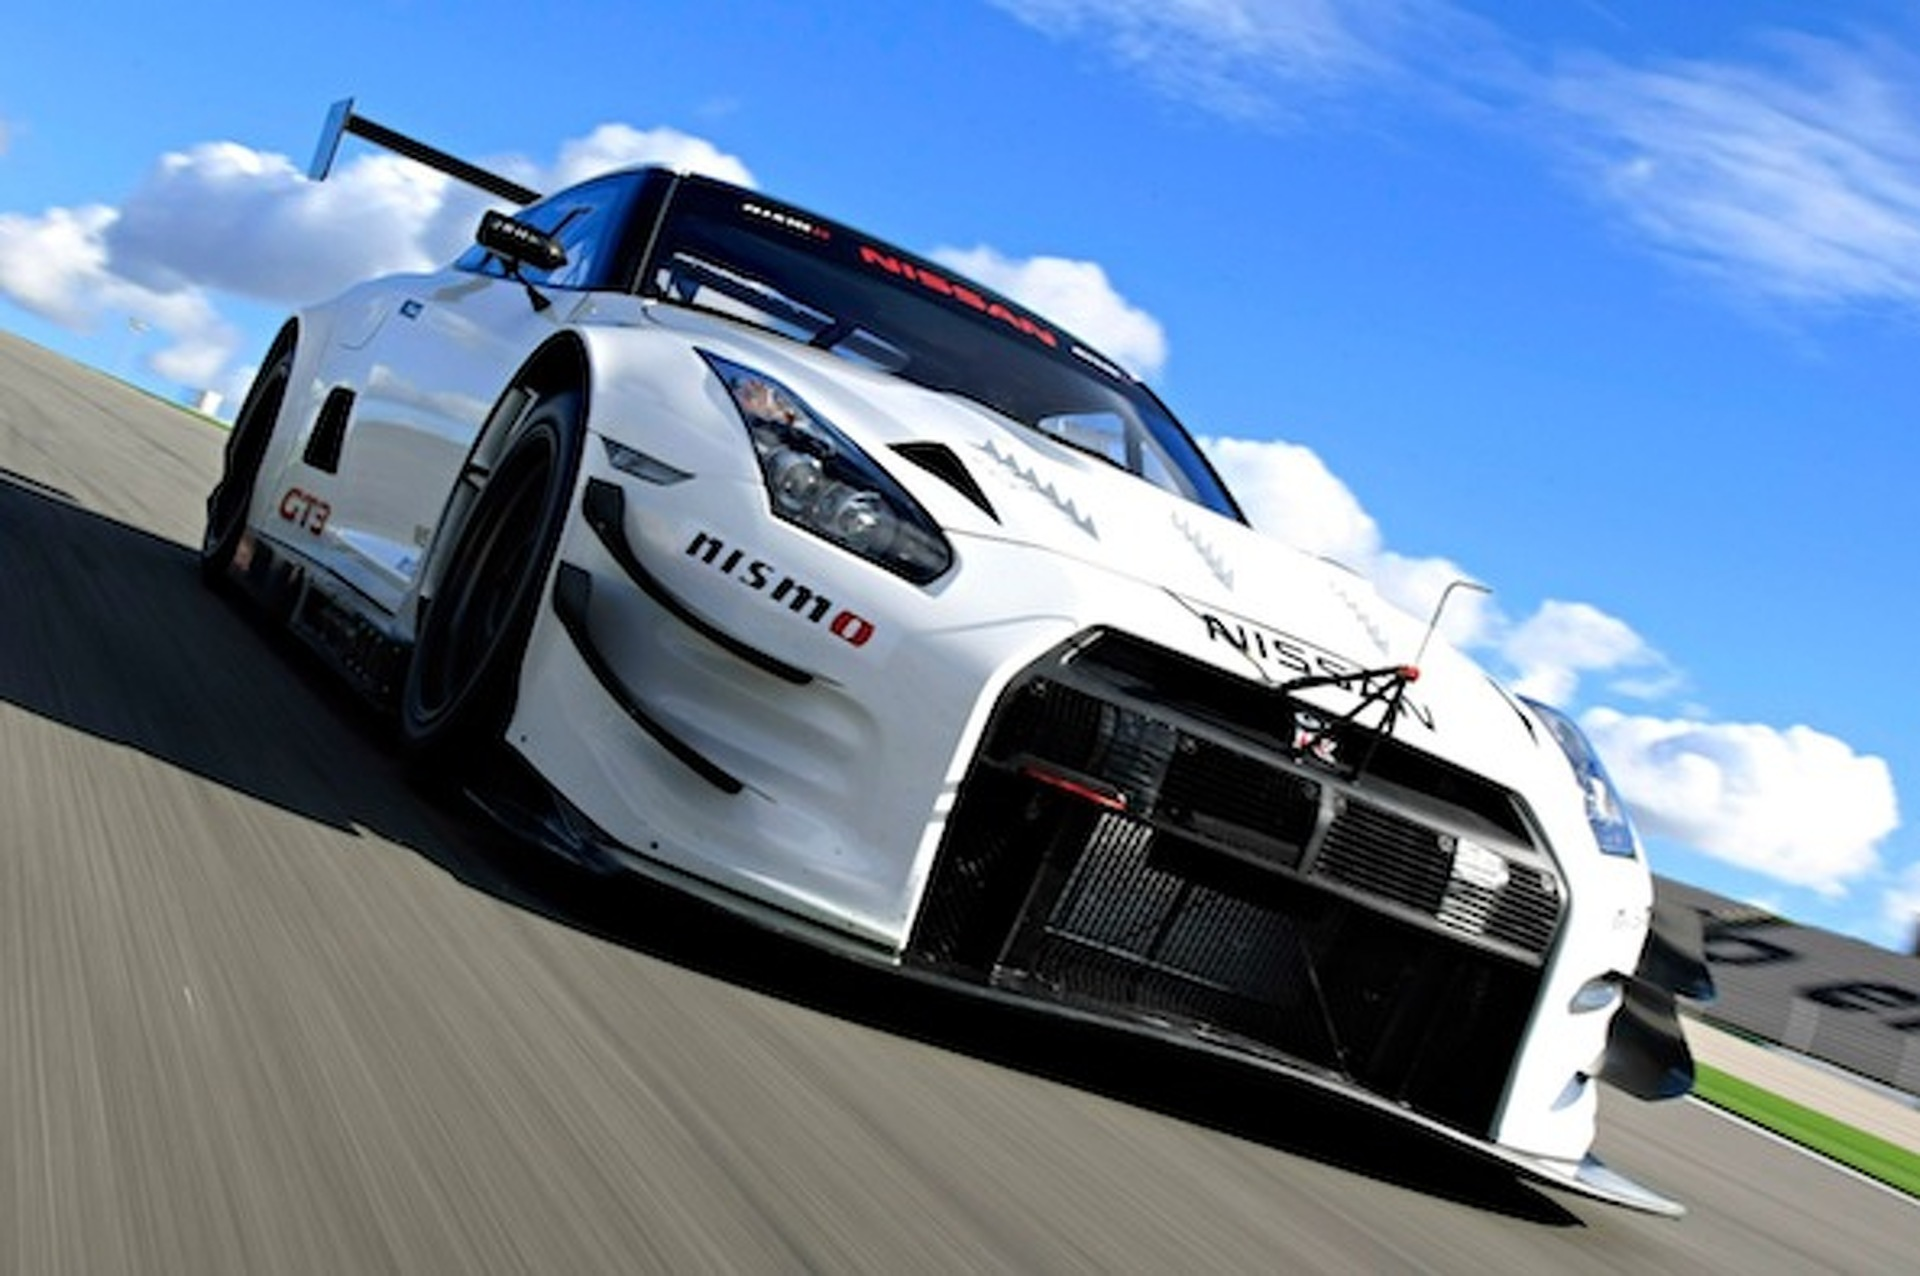 GT-R Nismo Will Be the Fastest Nissan Ever Built